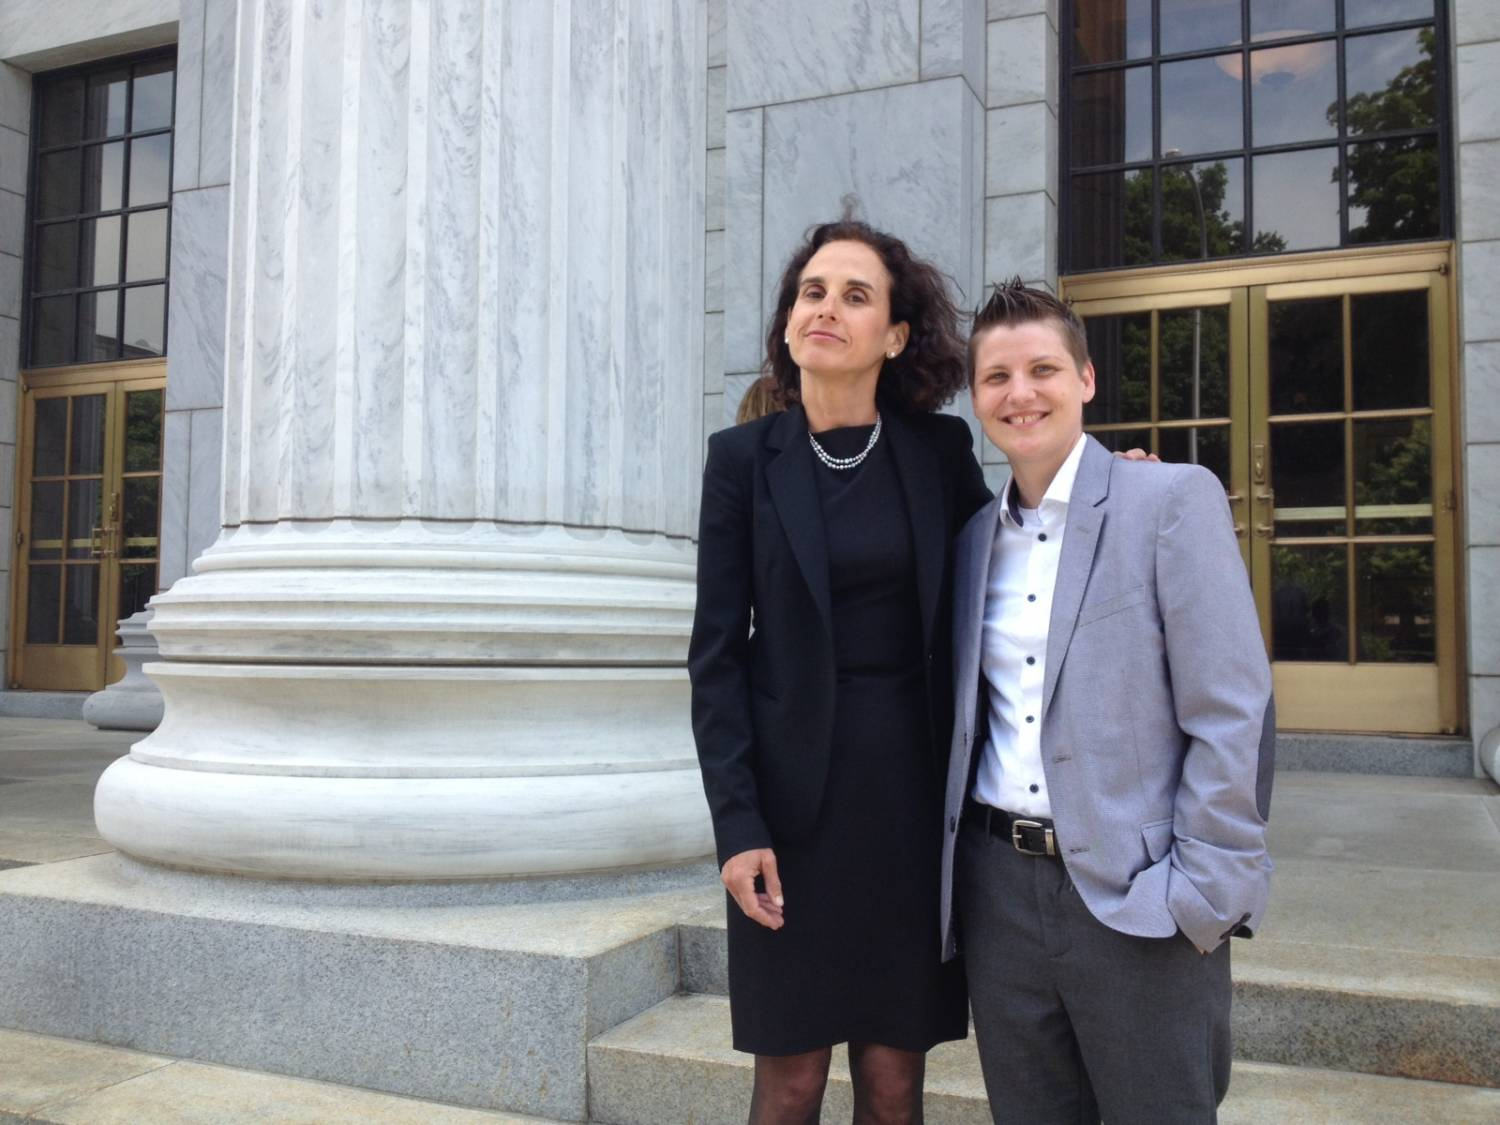 court cases with homosexual parents in arkansas getting visitation